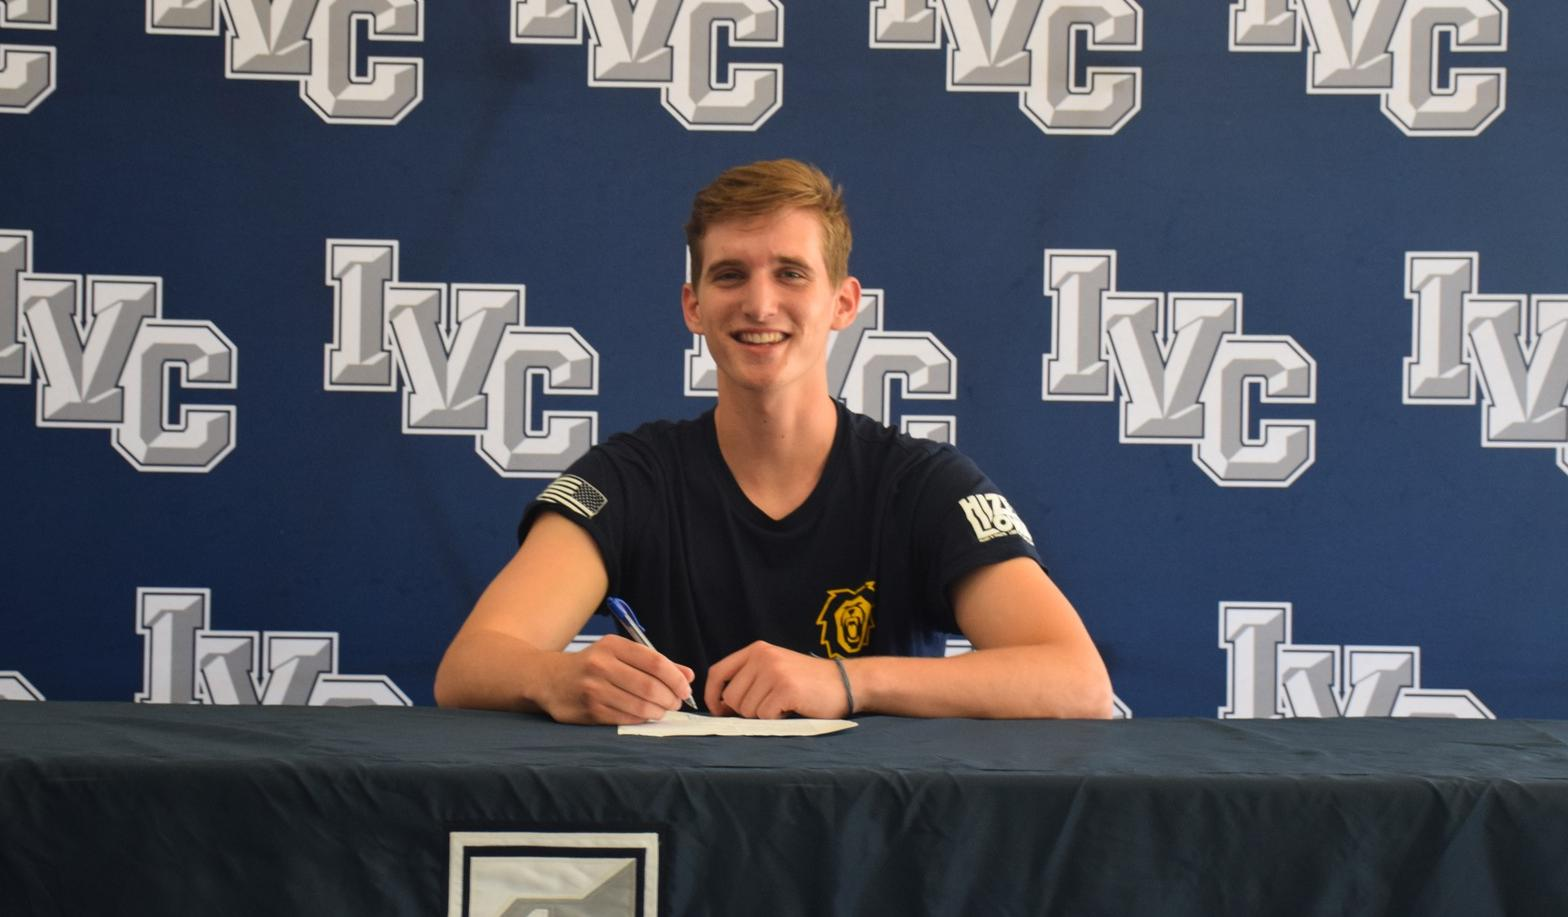 Men's volleyball player Declan Holder signs with Vanguard